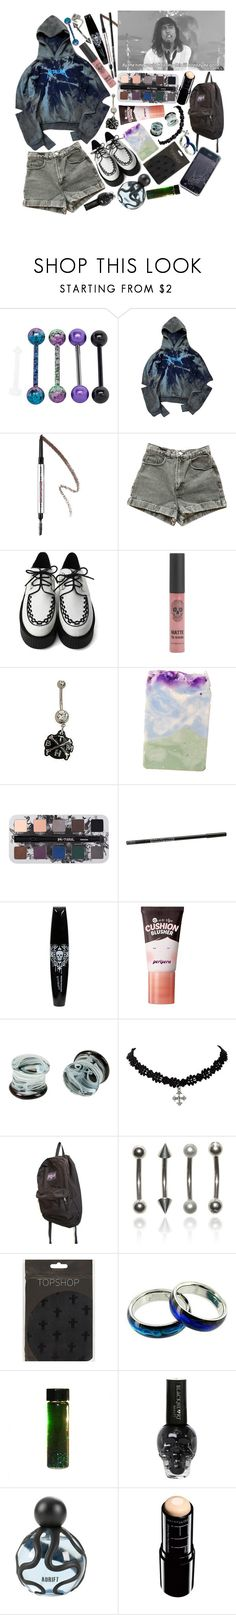 """She's got a method of killing, pulling you in like you're gonna start kissing. Fooling around until you've lost all feeling, sucking your blood until your heart stops beating."" by thelyricsmatter ❤ liked on Polyvore featuring Benefit, American Apparel, Urban Decay, peripera, JanSport and Maybelline"